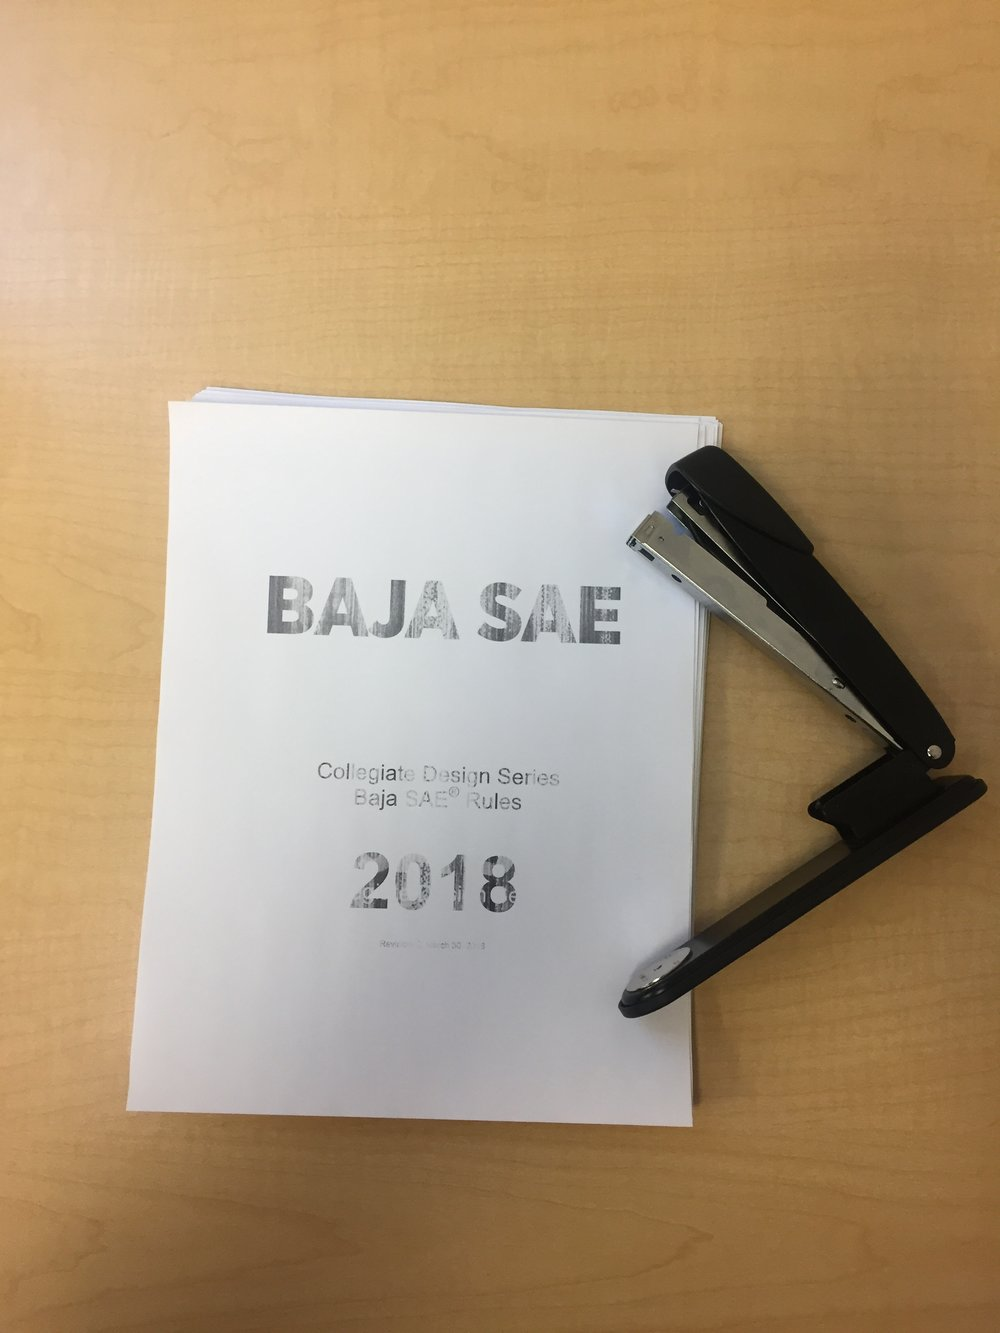 The 116-page 2018 Baja SAE Rulebook next to the now broken stapler